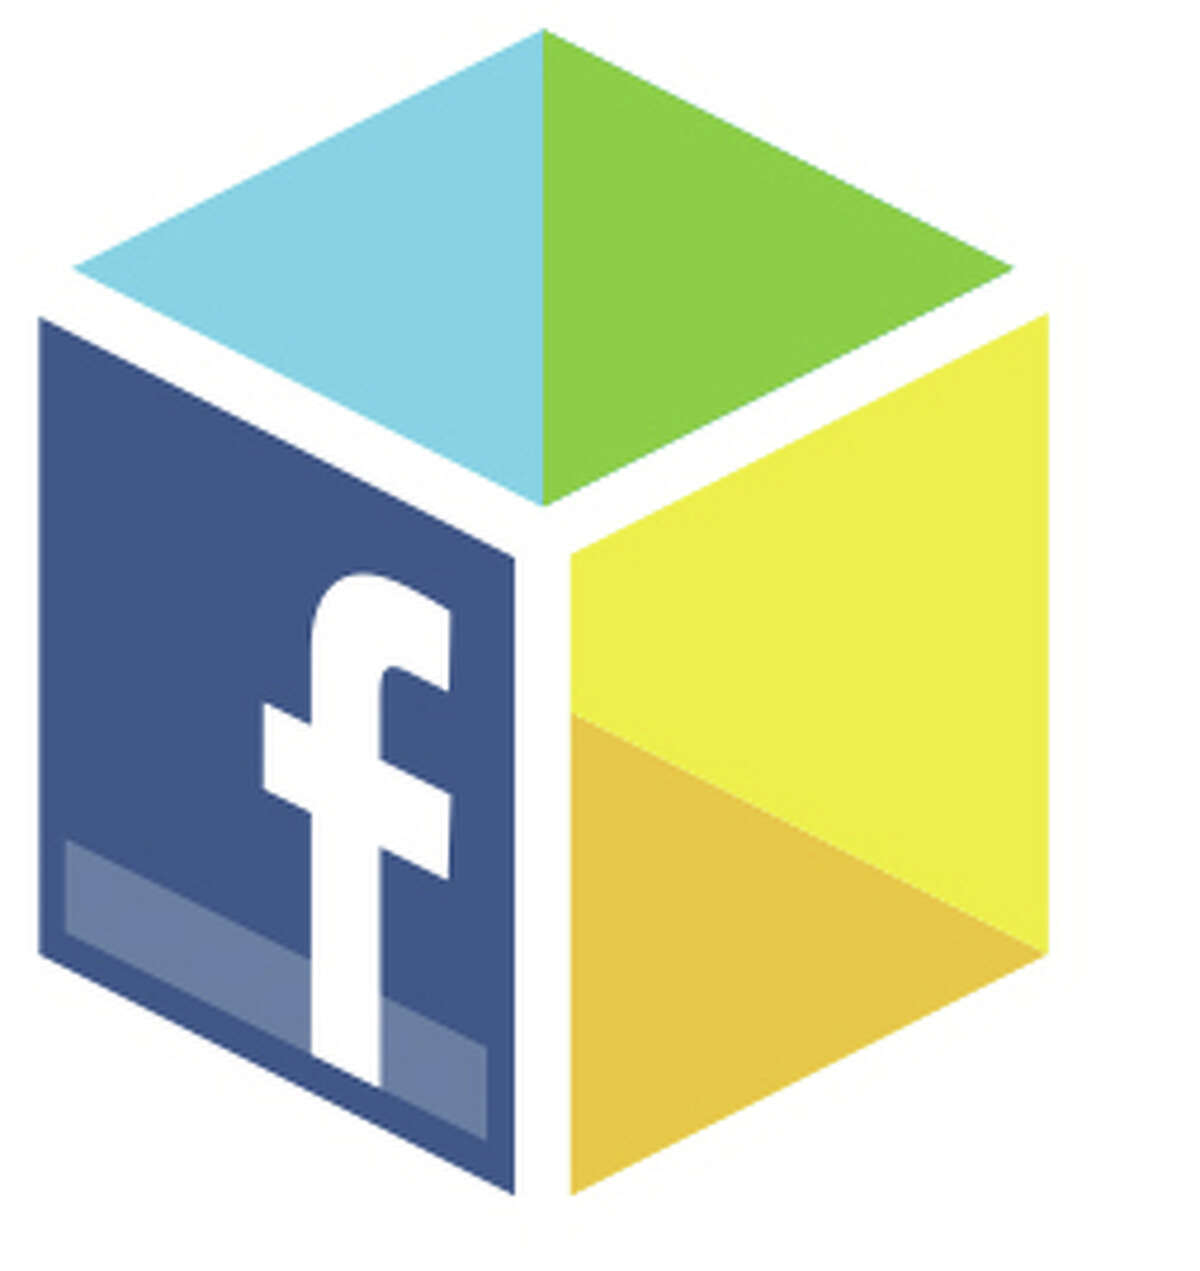 This undated handout product image provided by Facebook shows the company's logo for its new App Center. On Thursday, June 7, 2012, Facebook is beginning to roll out its App Center to its nearly 1 billion users, so they can find games and other applications with a social component more easily. The App Center will initially feature about 500 Facebook apps, mostly games, that the company has reviewed to meet its quality standards. (AP Photo/Facebook)